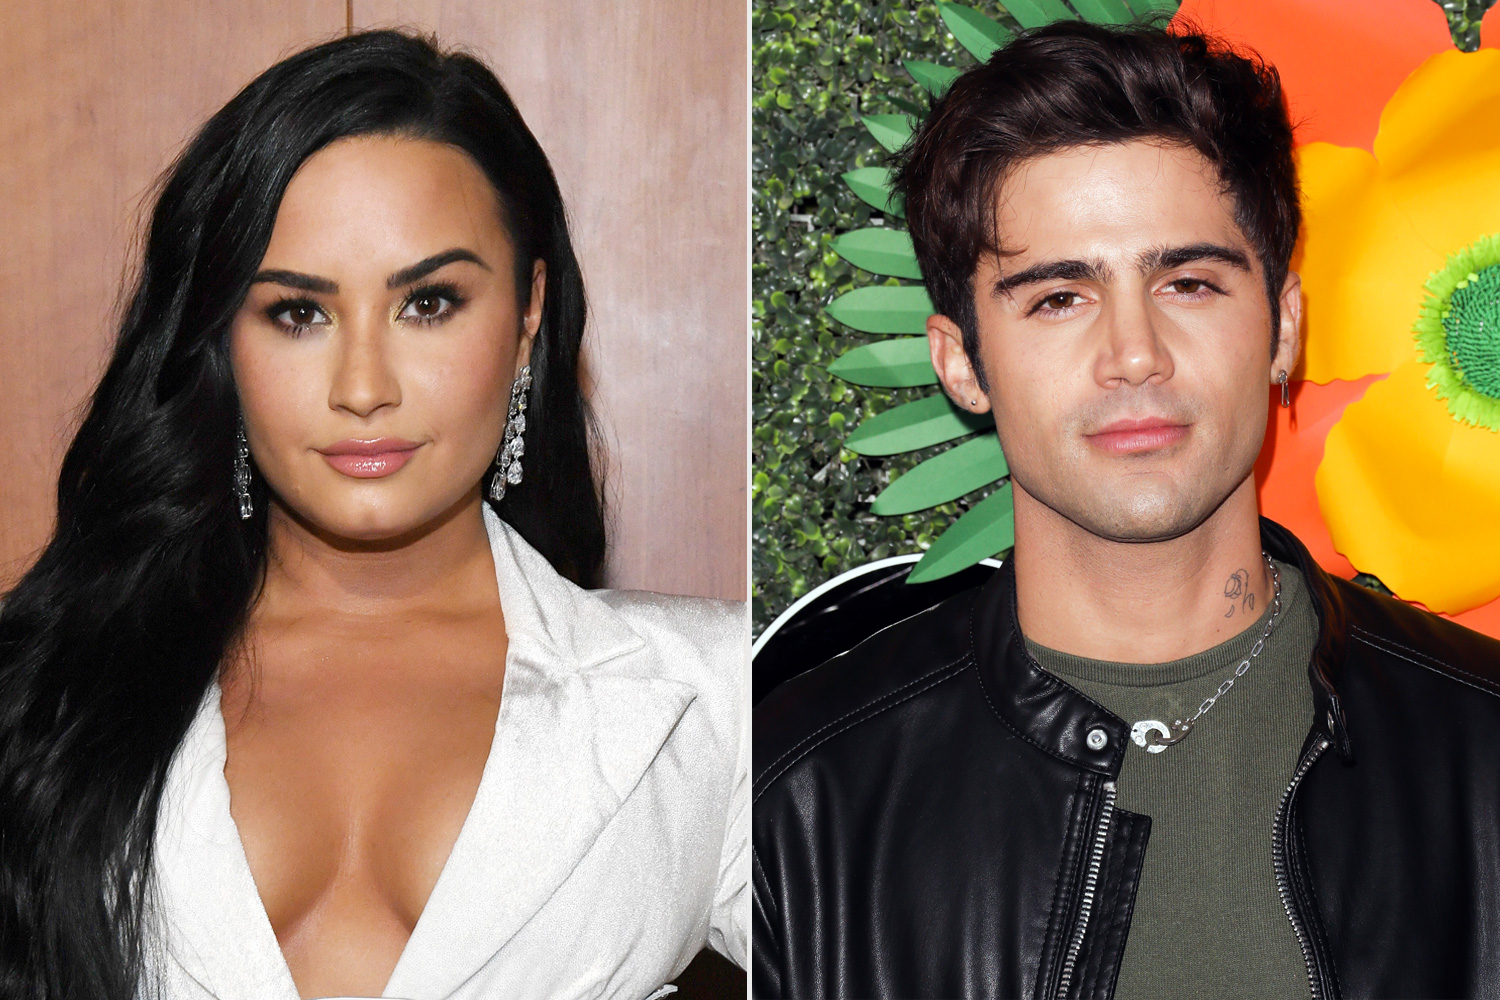 demi-lovato-is-she-ready-to-date-again-after-her-max-ehrich-breakup